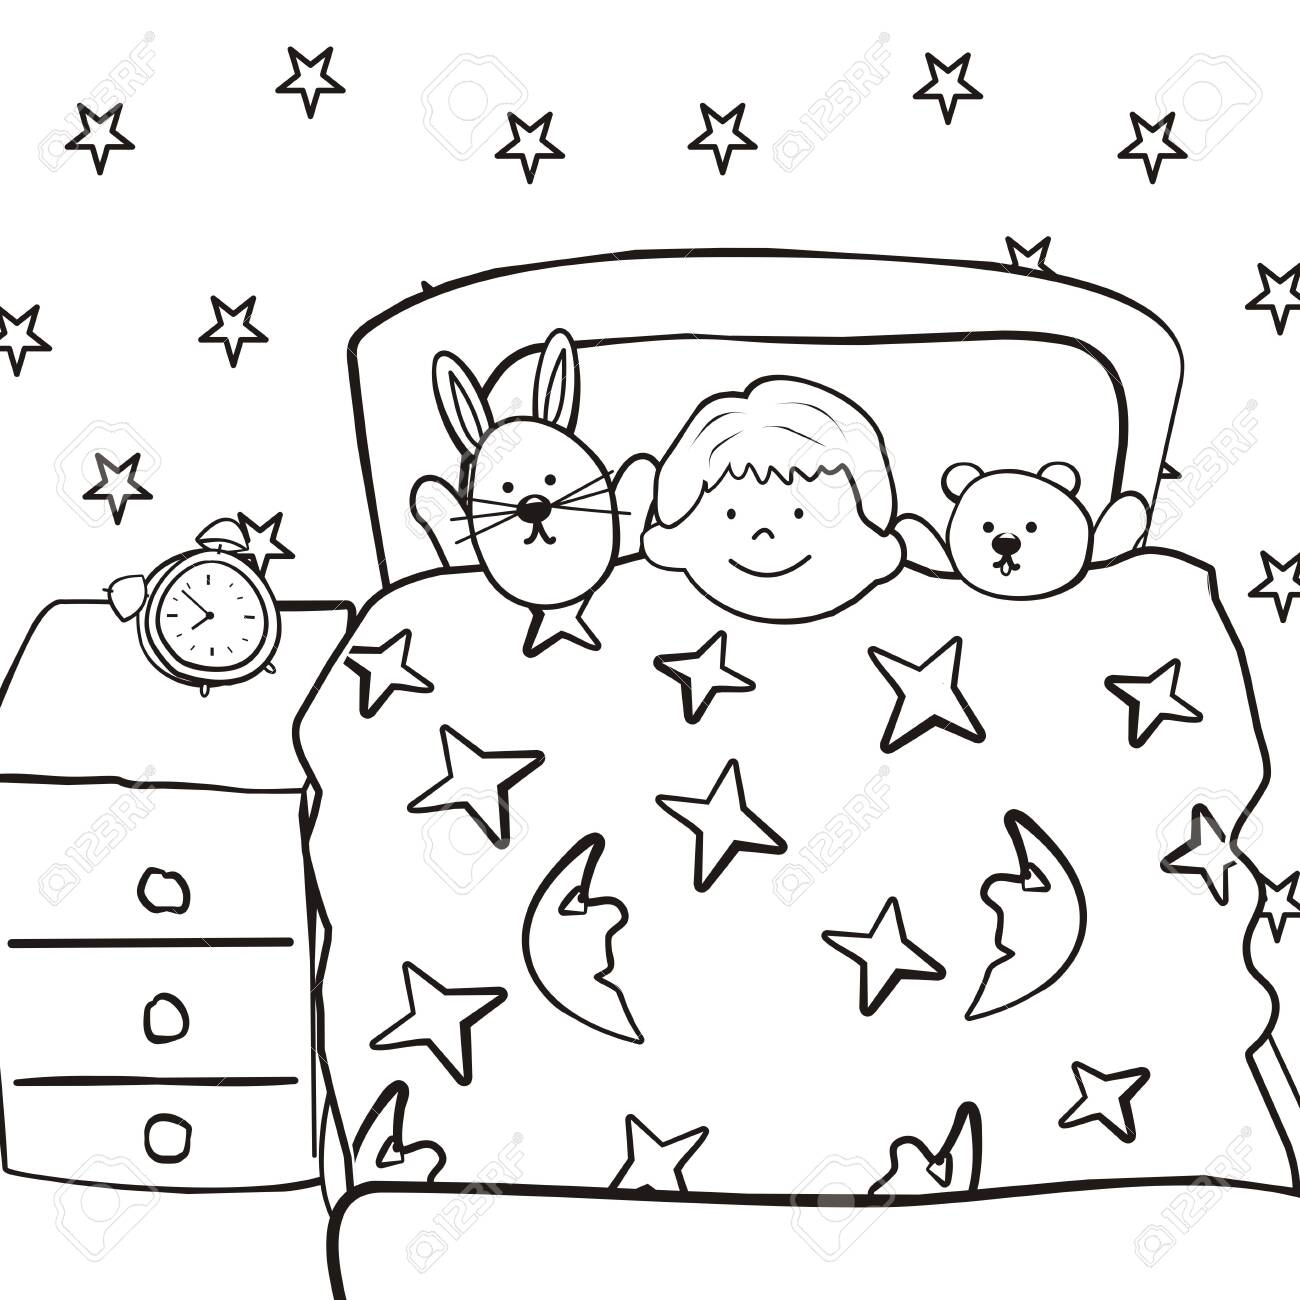 Nursery Boy In Bed Coloring Book Vector Icon Royalty Free Cliparts Vectors And Stock Illustration Image 143523735